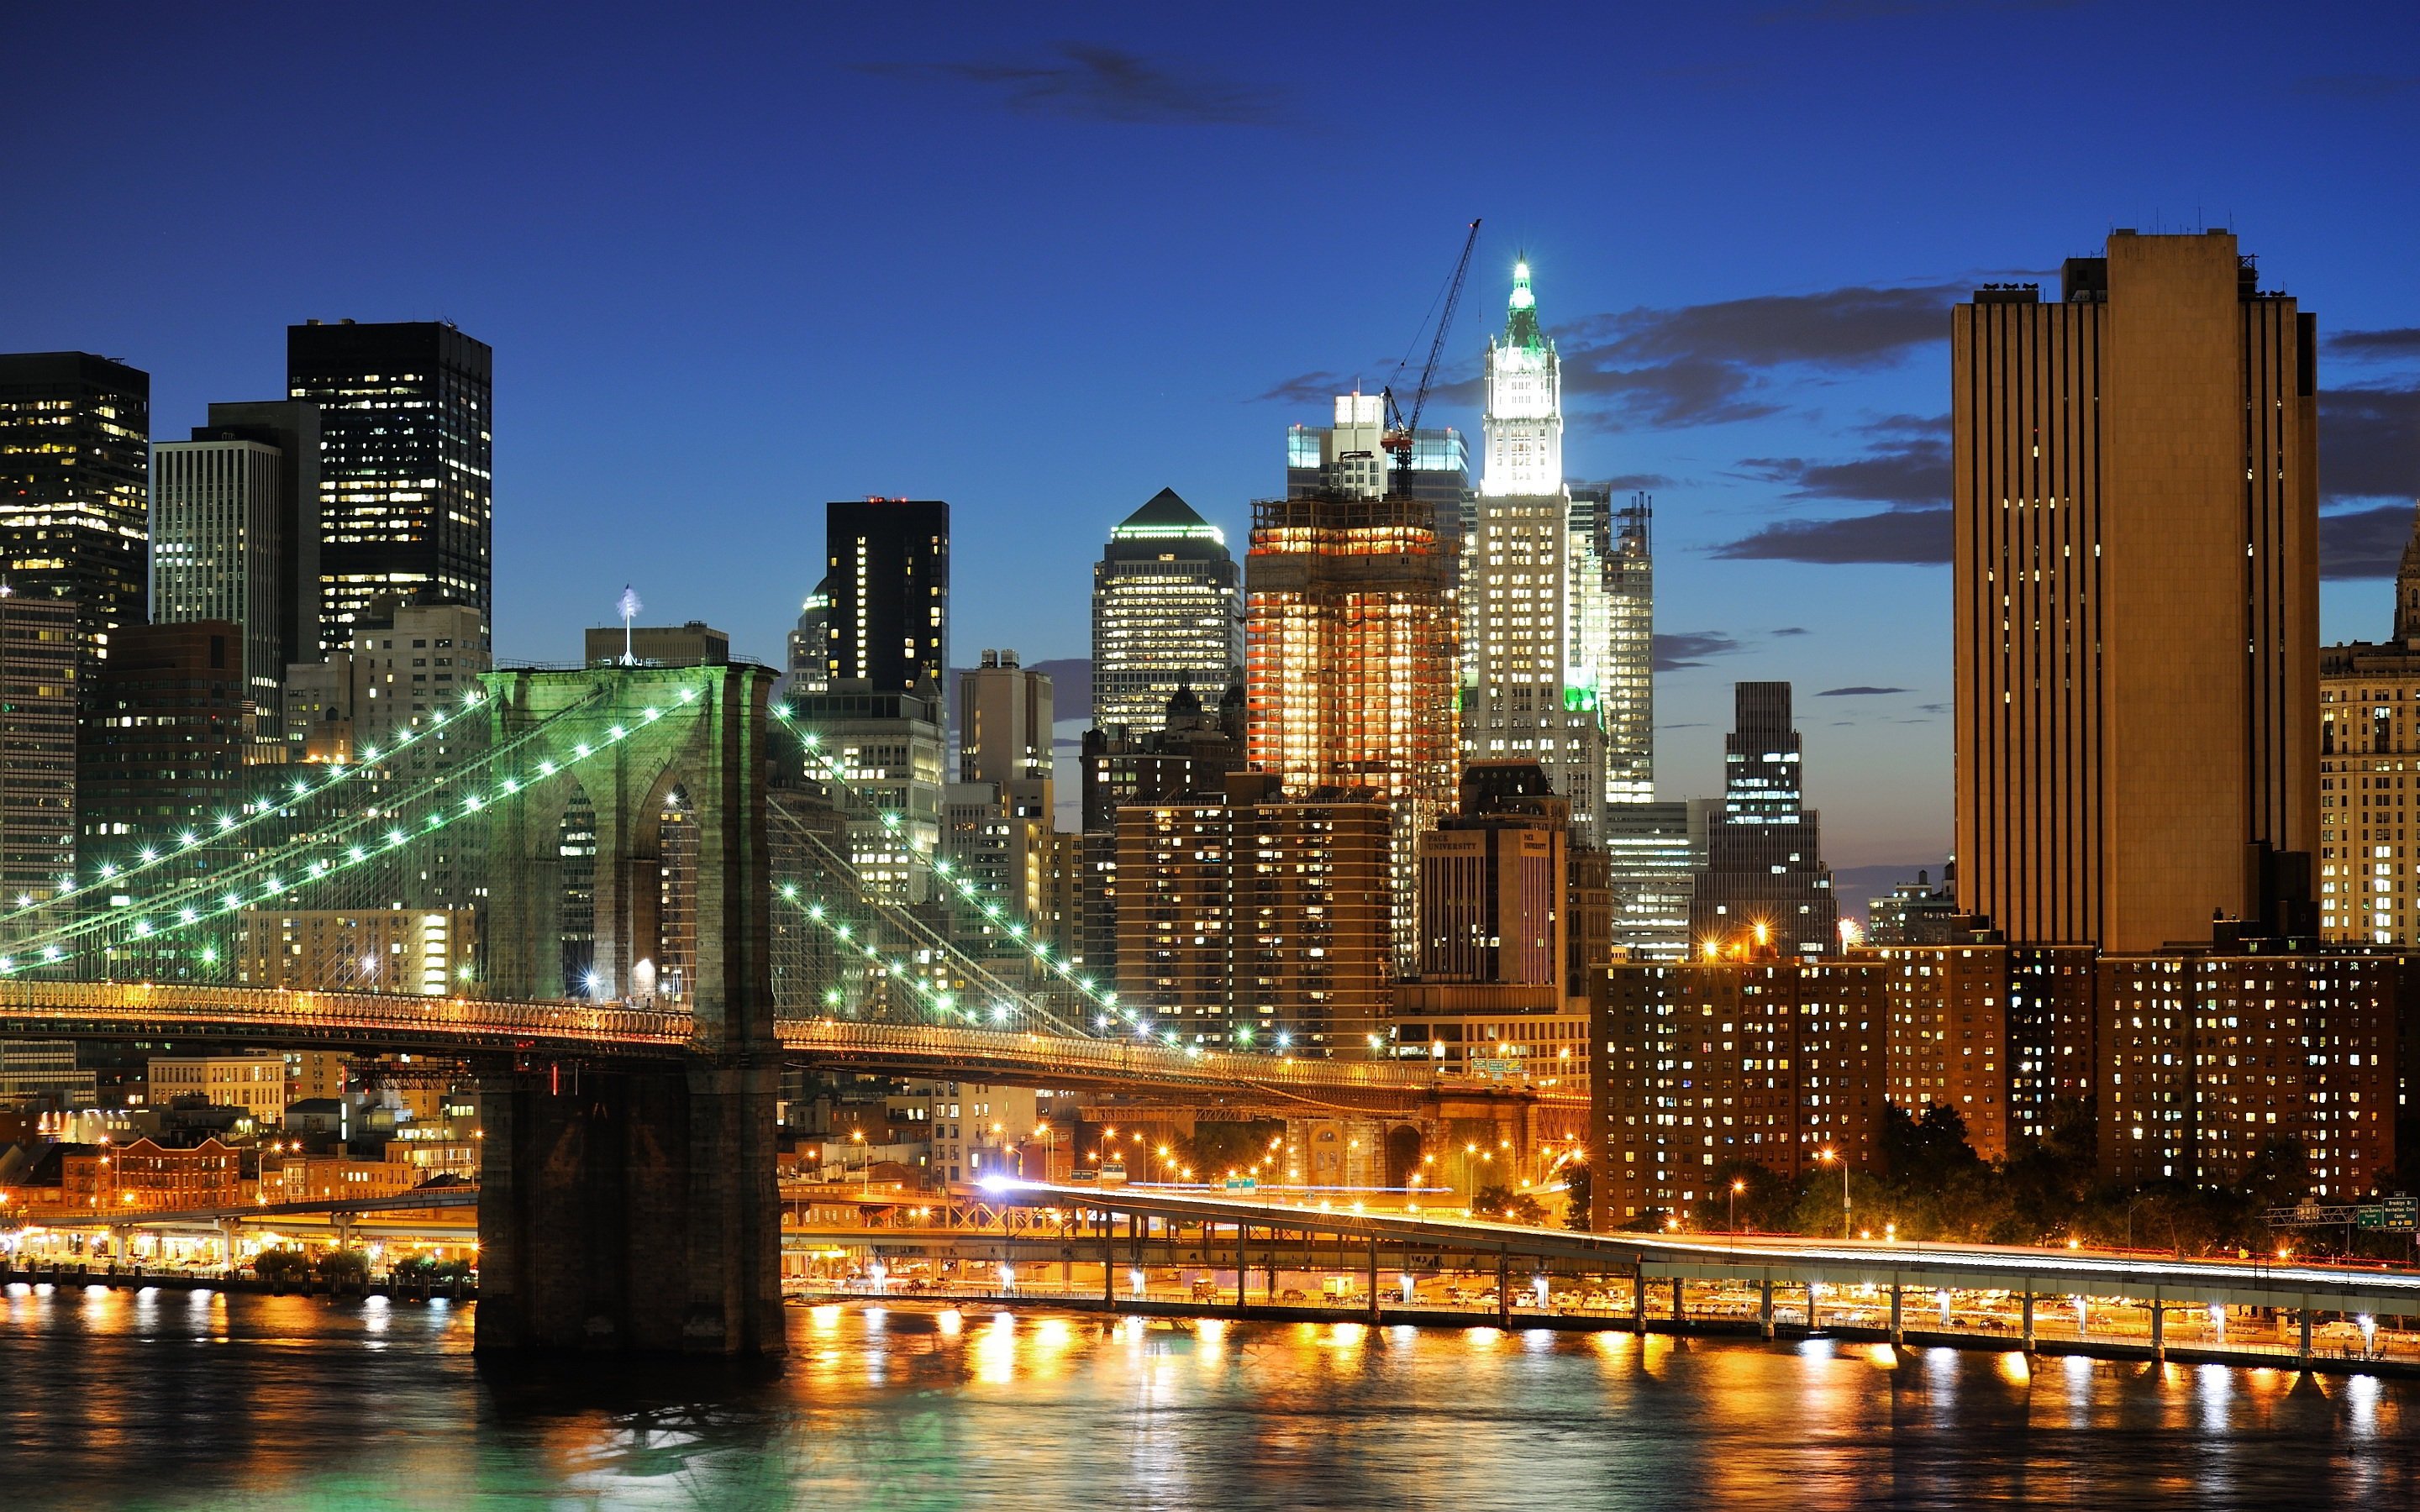 Live New York City Wallpapers | New York City Wallpapers Collection